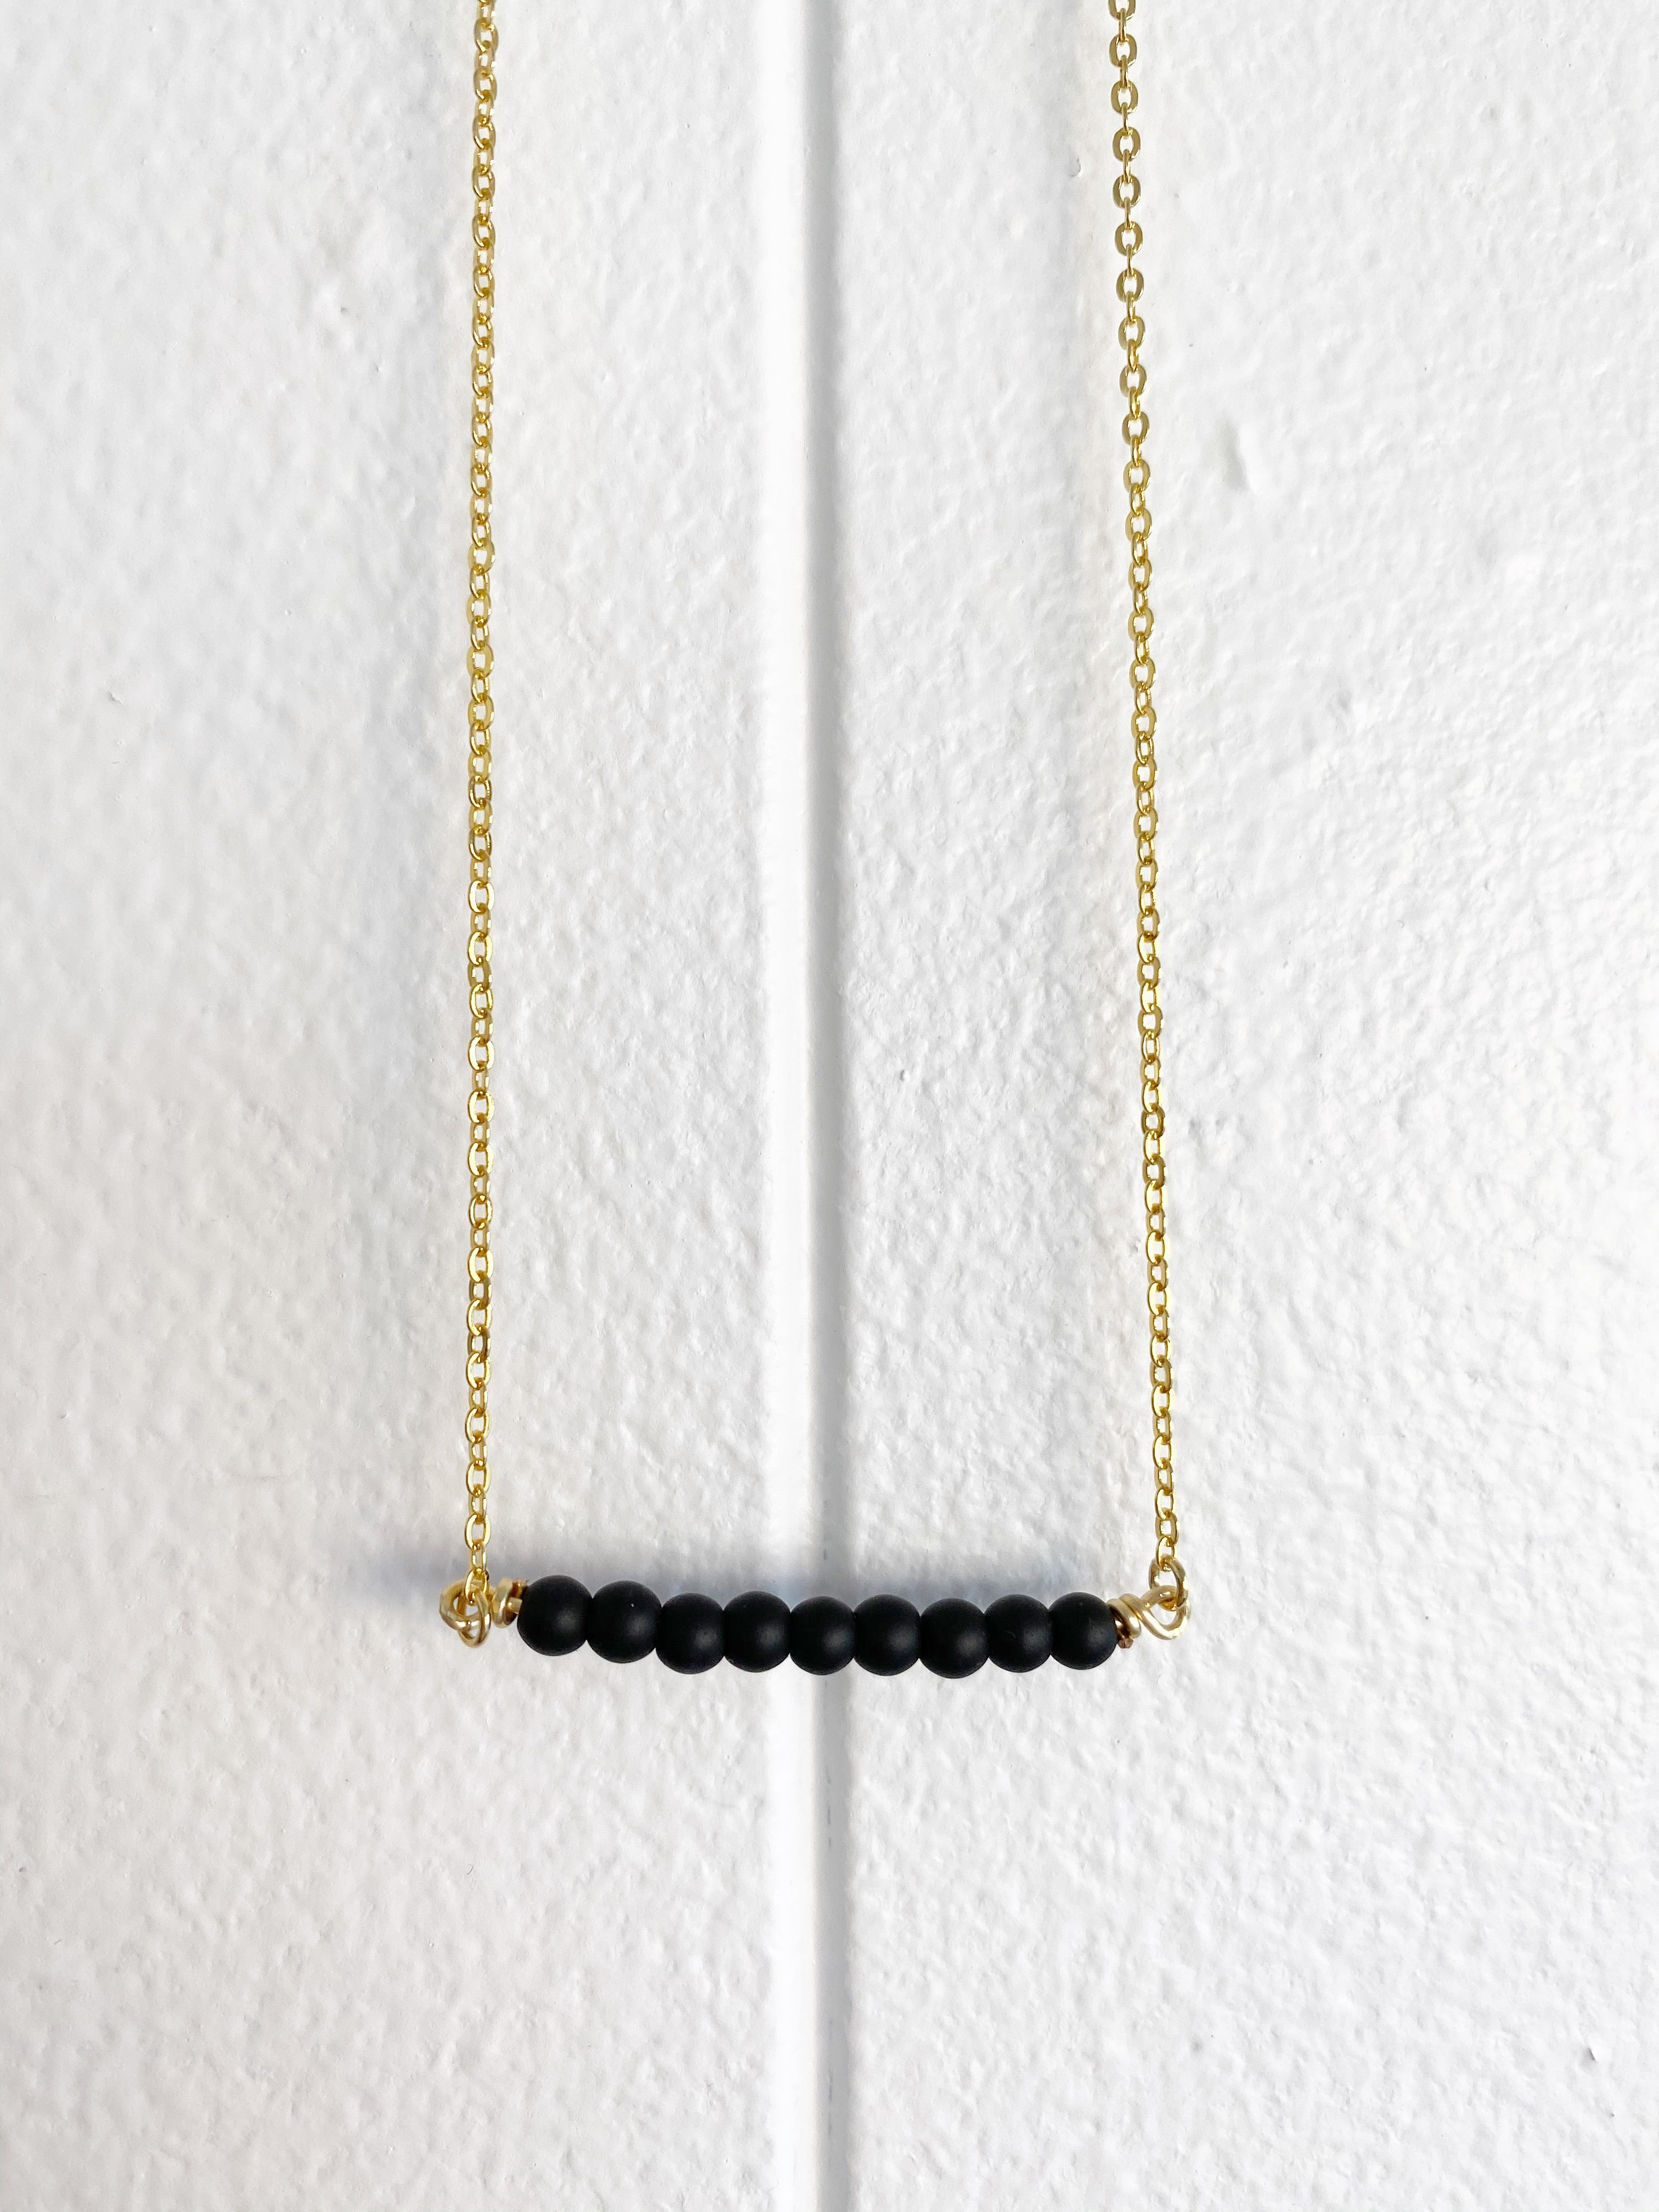 Against a white paneled wall hangs a gold chain necklace with black round beads that form a horizontal bar shape.